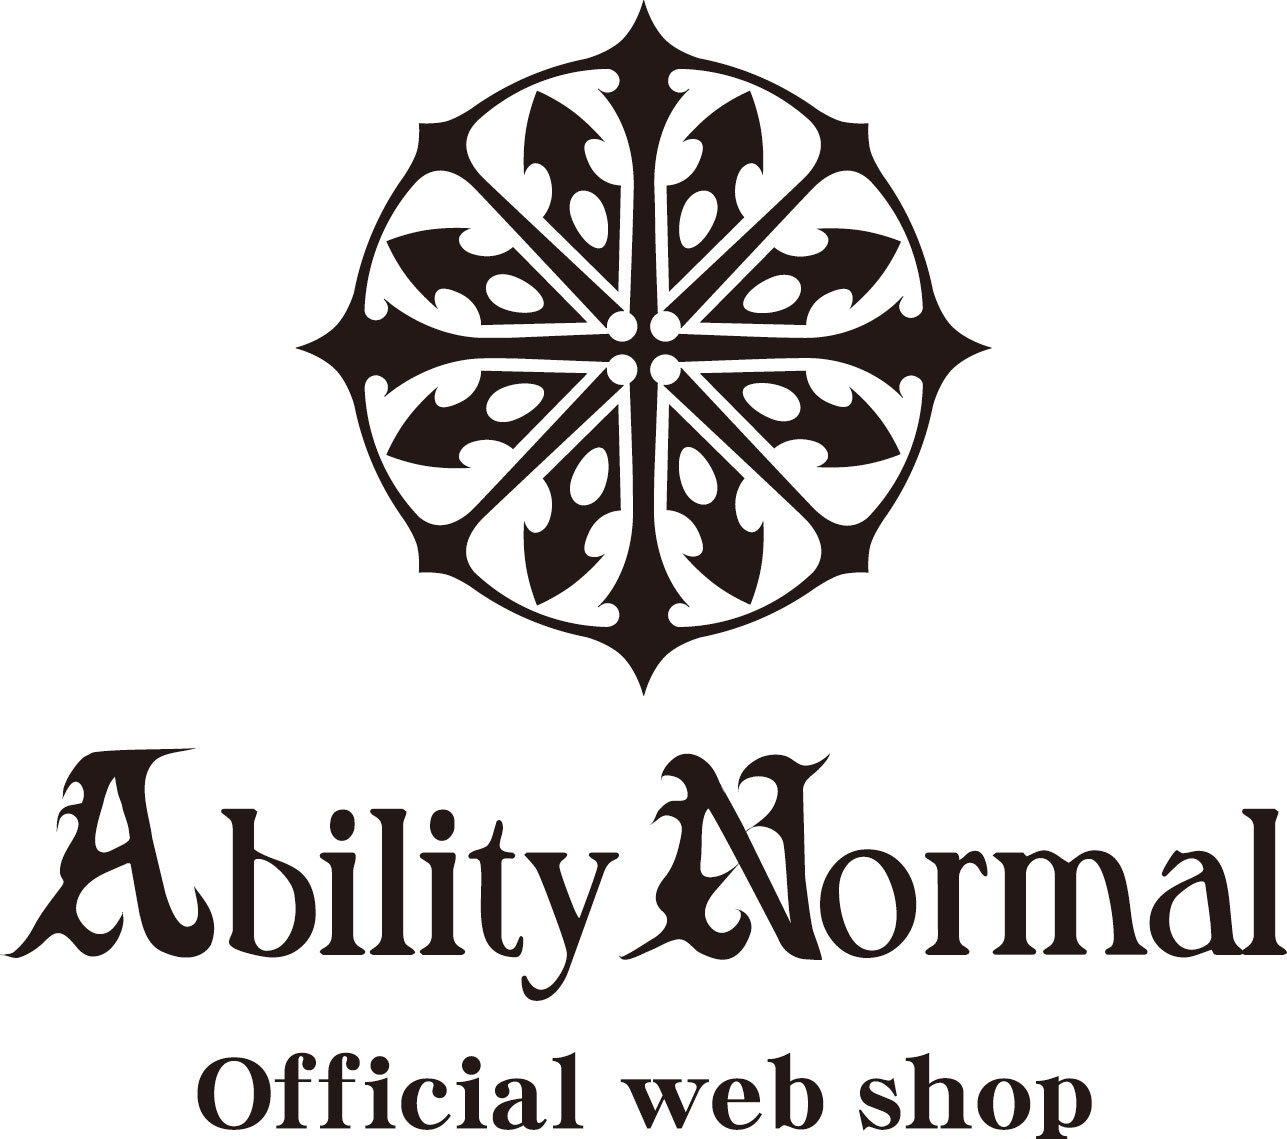 Ability Normal web shop